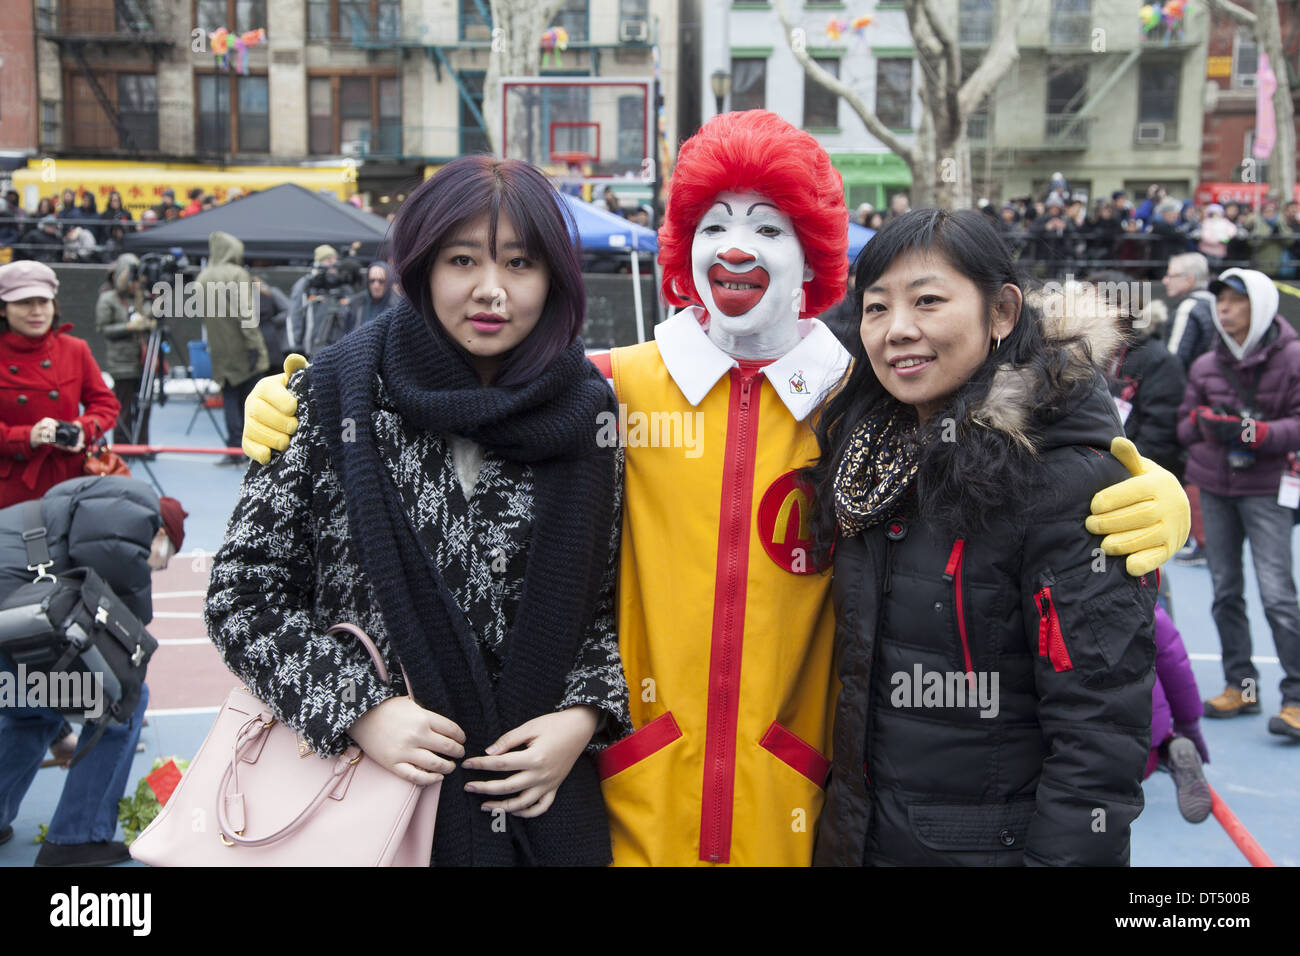 Ronald McDonald with 2 young ladies at the Chinese New Year celebration in Chinatown, NYC. - Stock Image